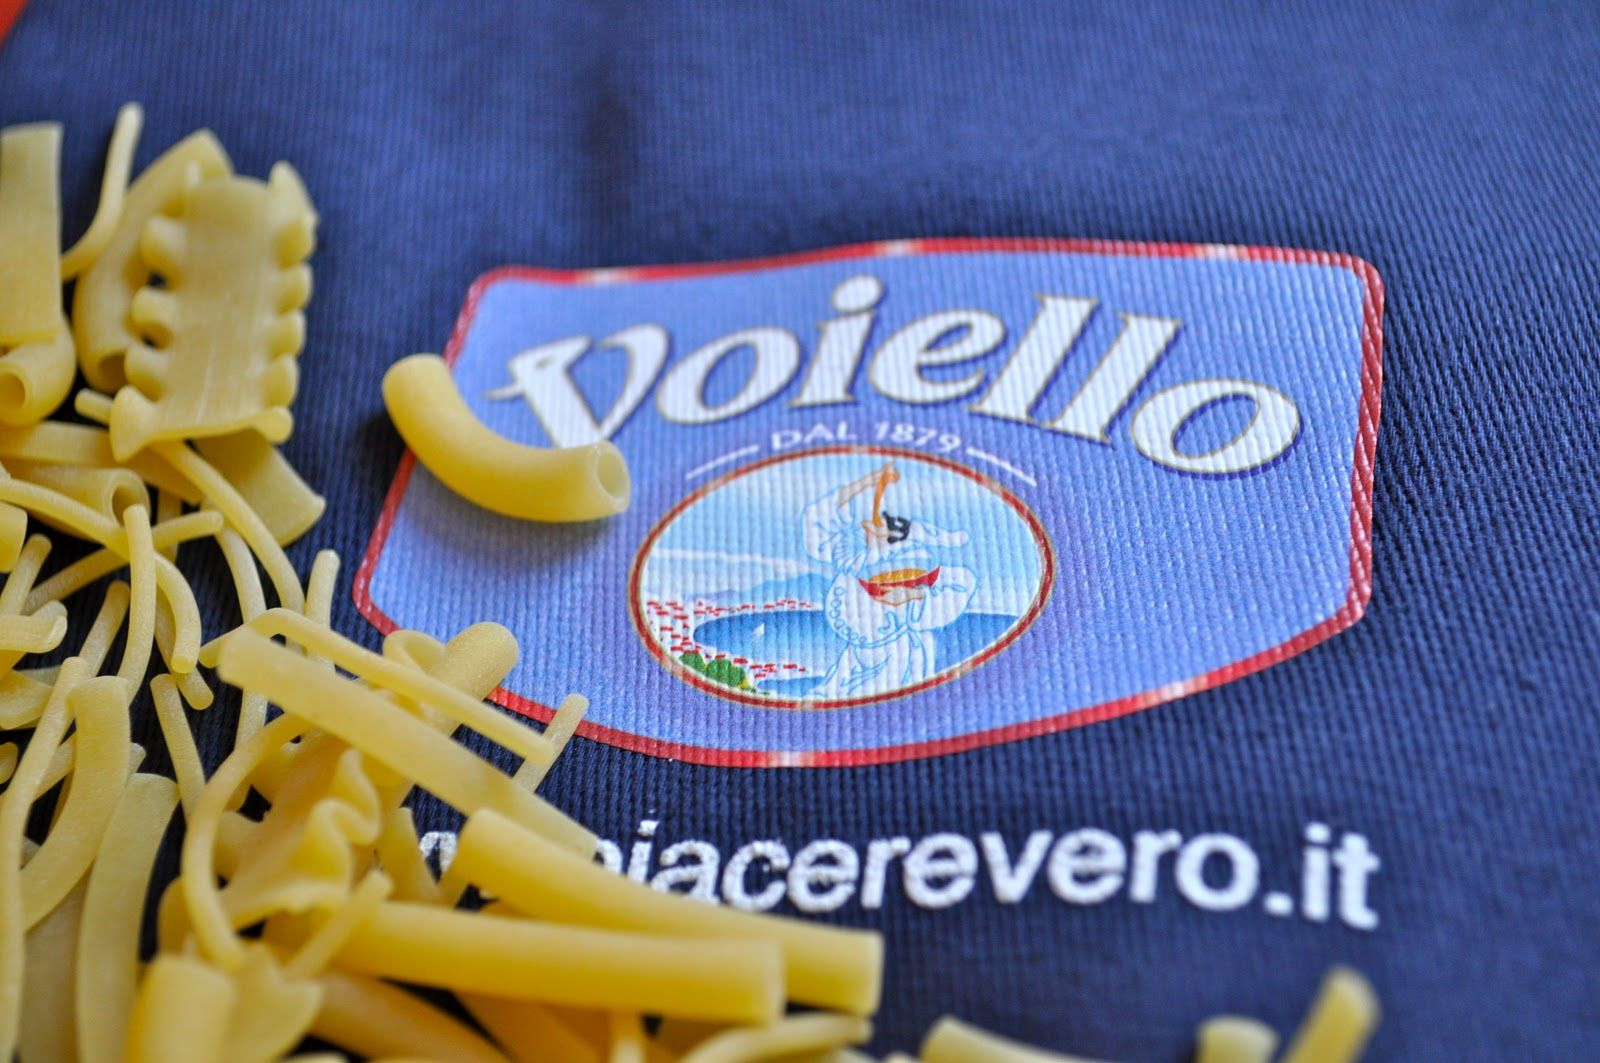 Voiello is an Italian food company based in Torre Annunziata. It was founded in 1879.  Voiello produces a range of pasta.